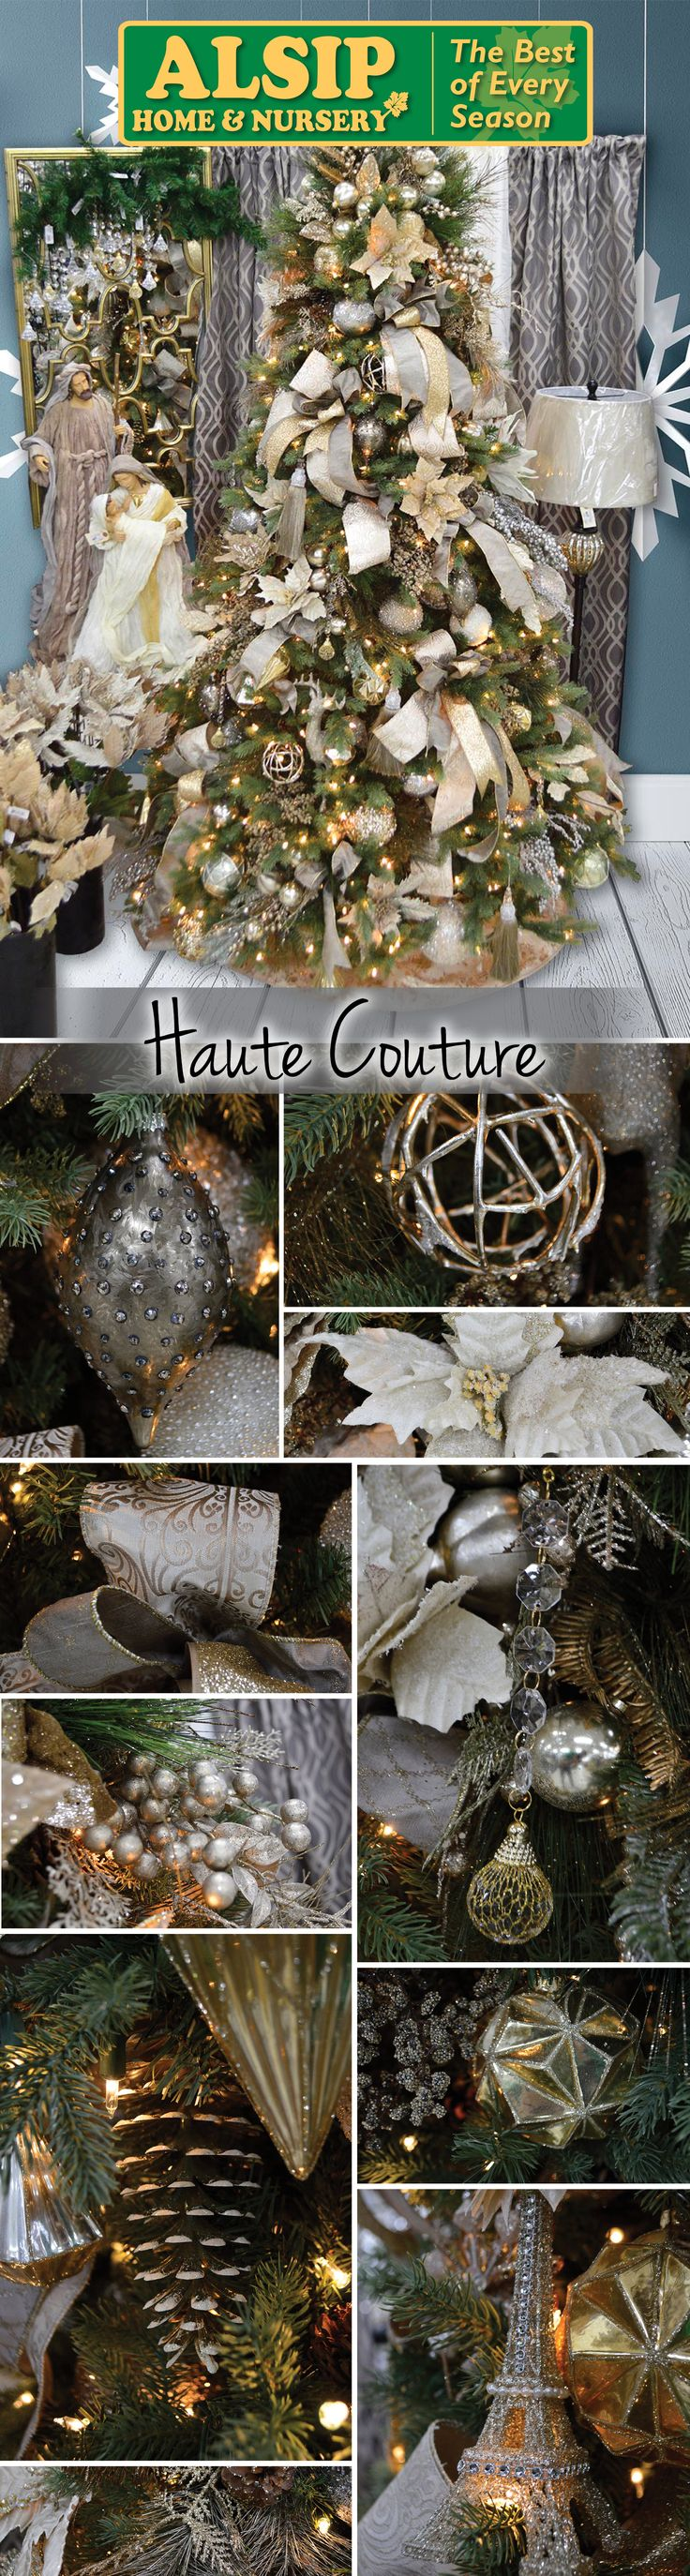 """Haute Couture 2017 WOW! The """"Haute Couture"""" tree overwhelms with an immaculate display of gold and white decorations. The stunning combination of ribbons and ornaments makes this tree live up to its name."""